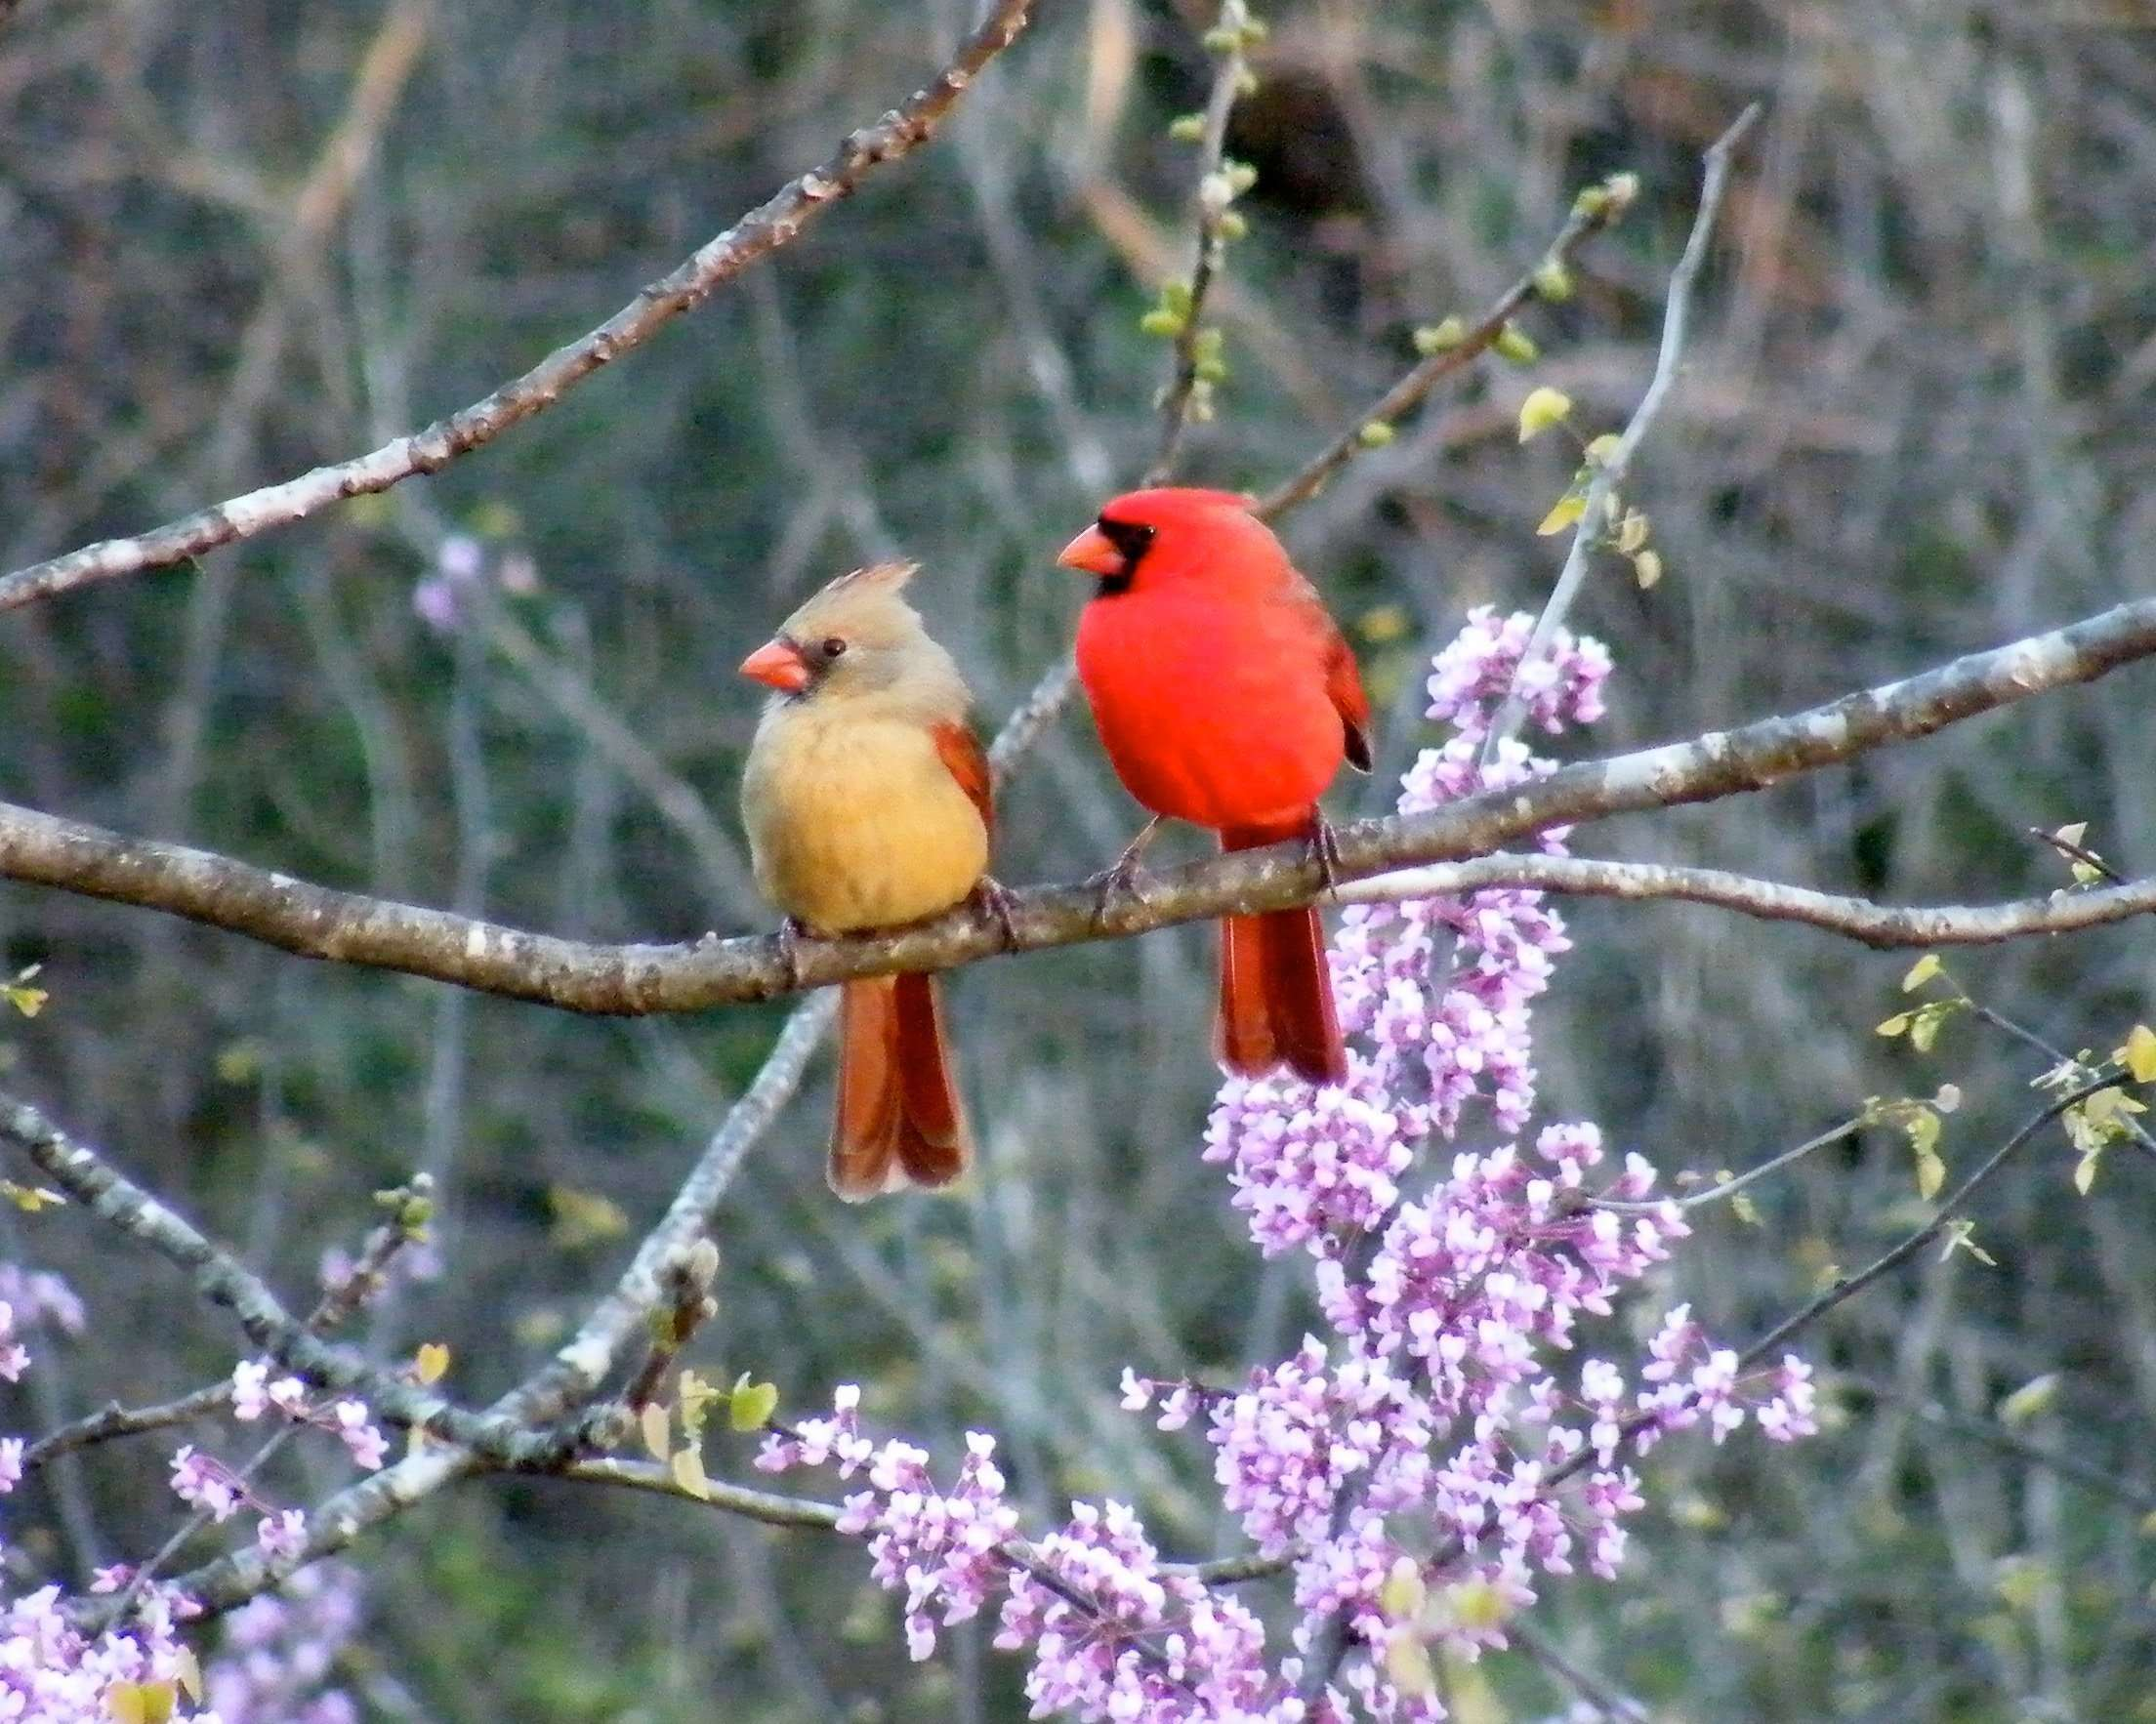 Male & female Cardinal sit in Redbud tree photo by Gail E Rowley Ozark Stream Photography